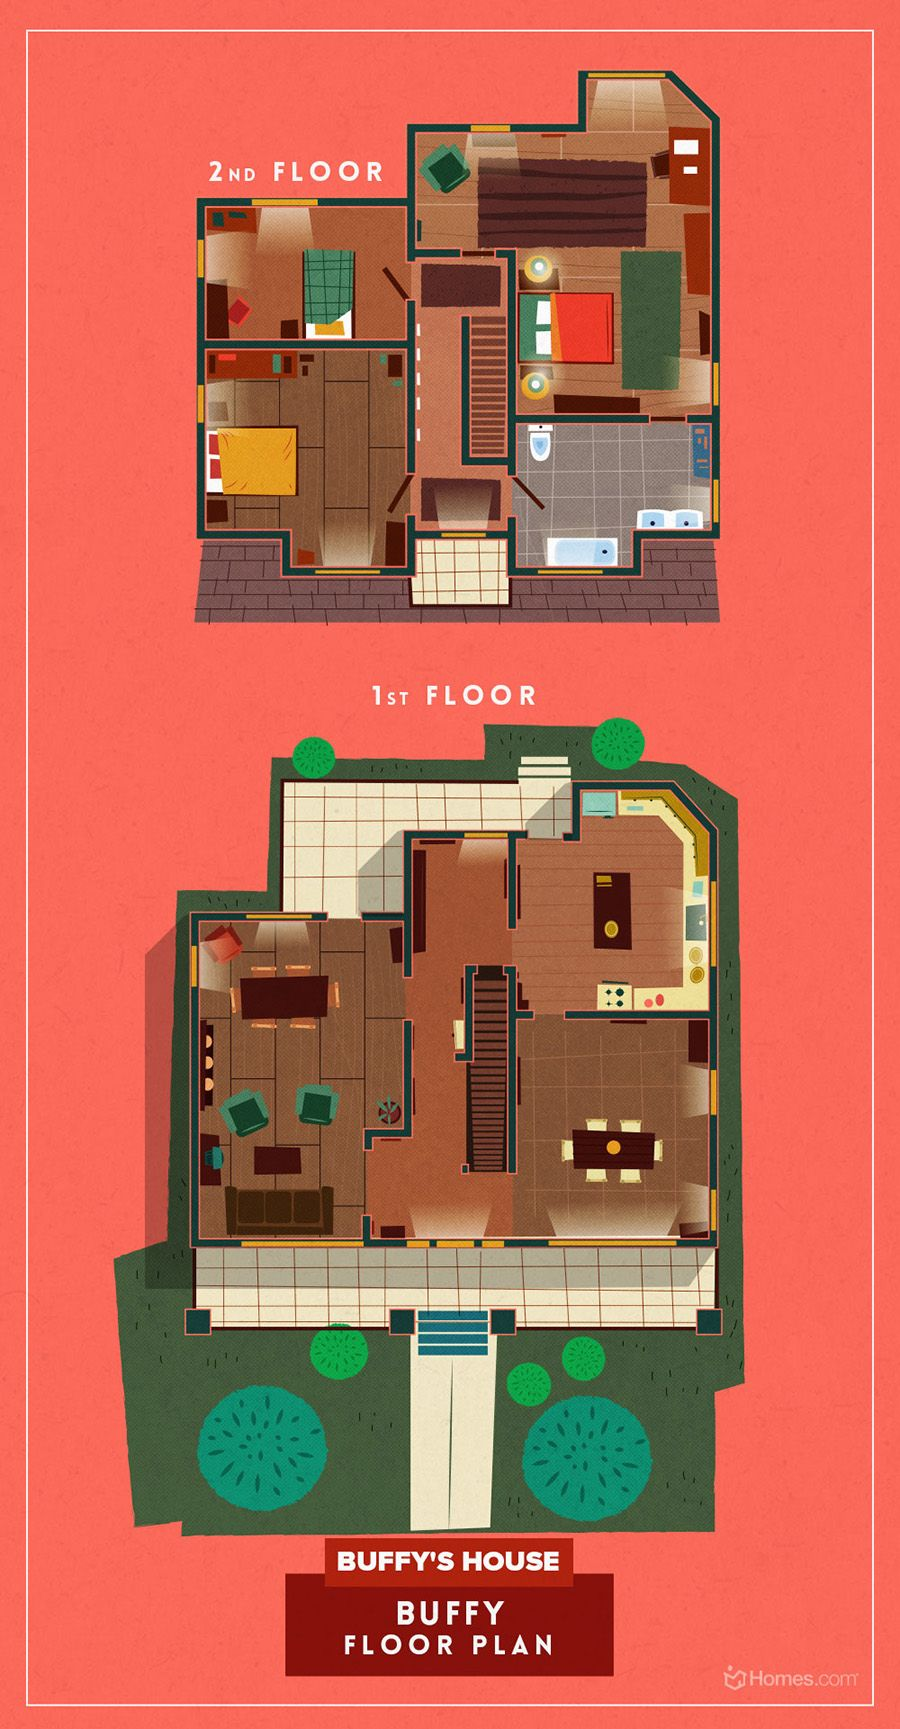 In a tribute to great TV sets, here are the floor plans of the living spaces of characters from eight of the greatest cult TV shows.